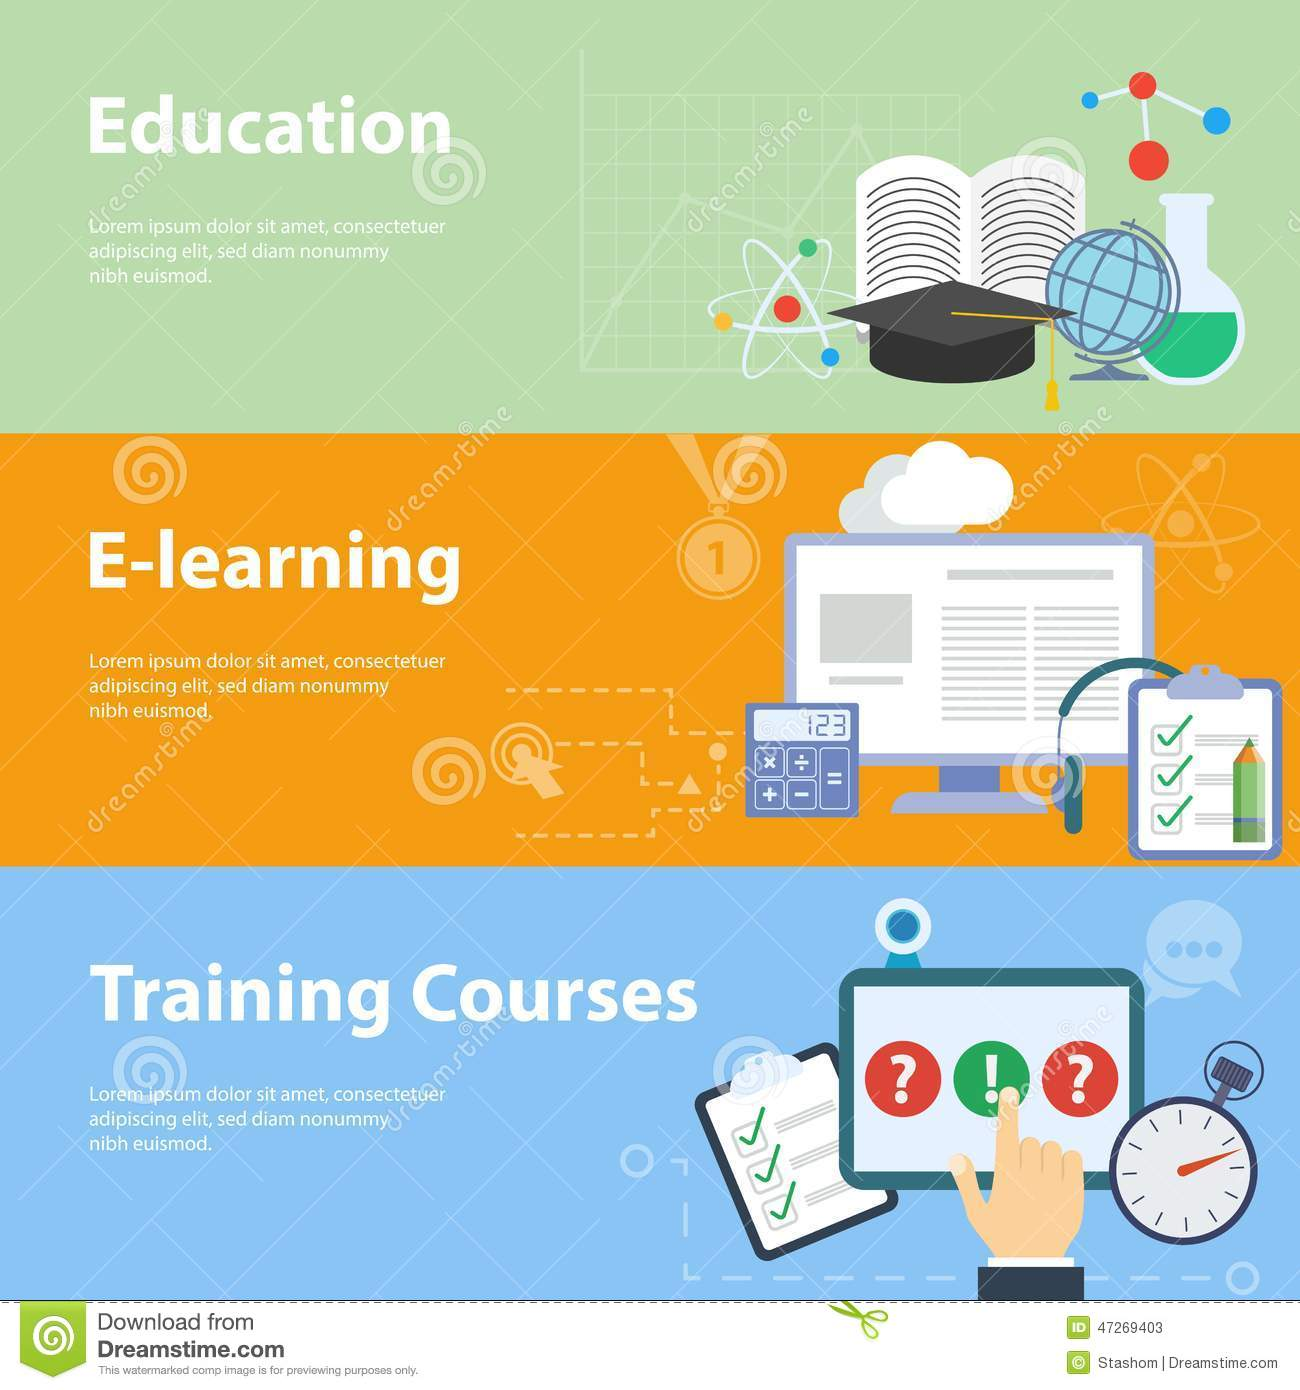 Web Design college course subjects